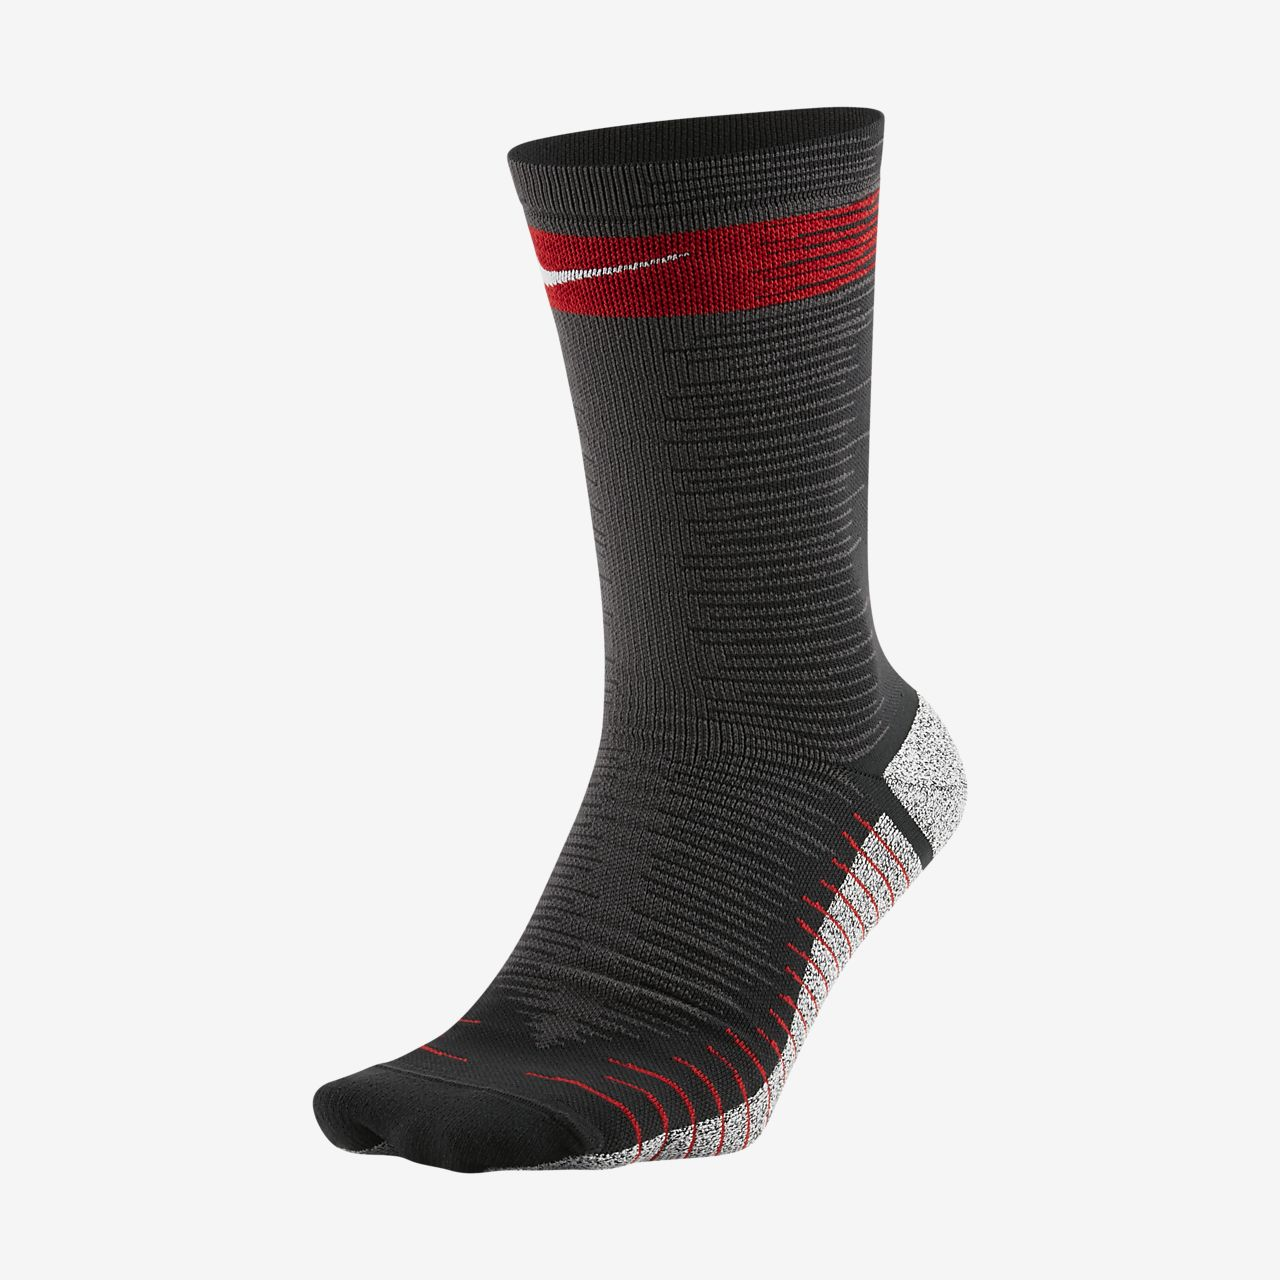 589f5aab9 NikeGrip Strike Light Crew Football Socks. Nike.com NL